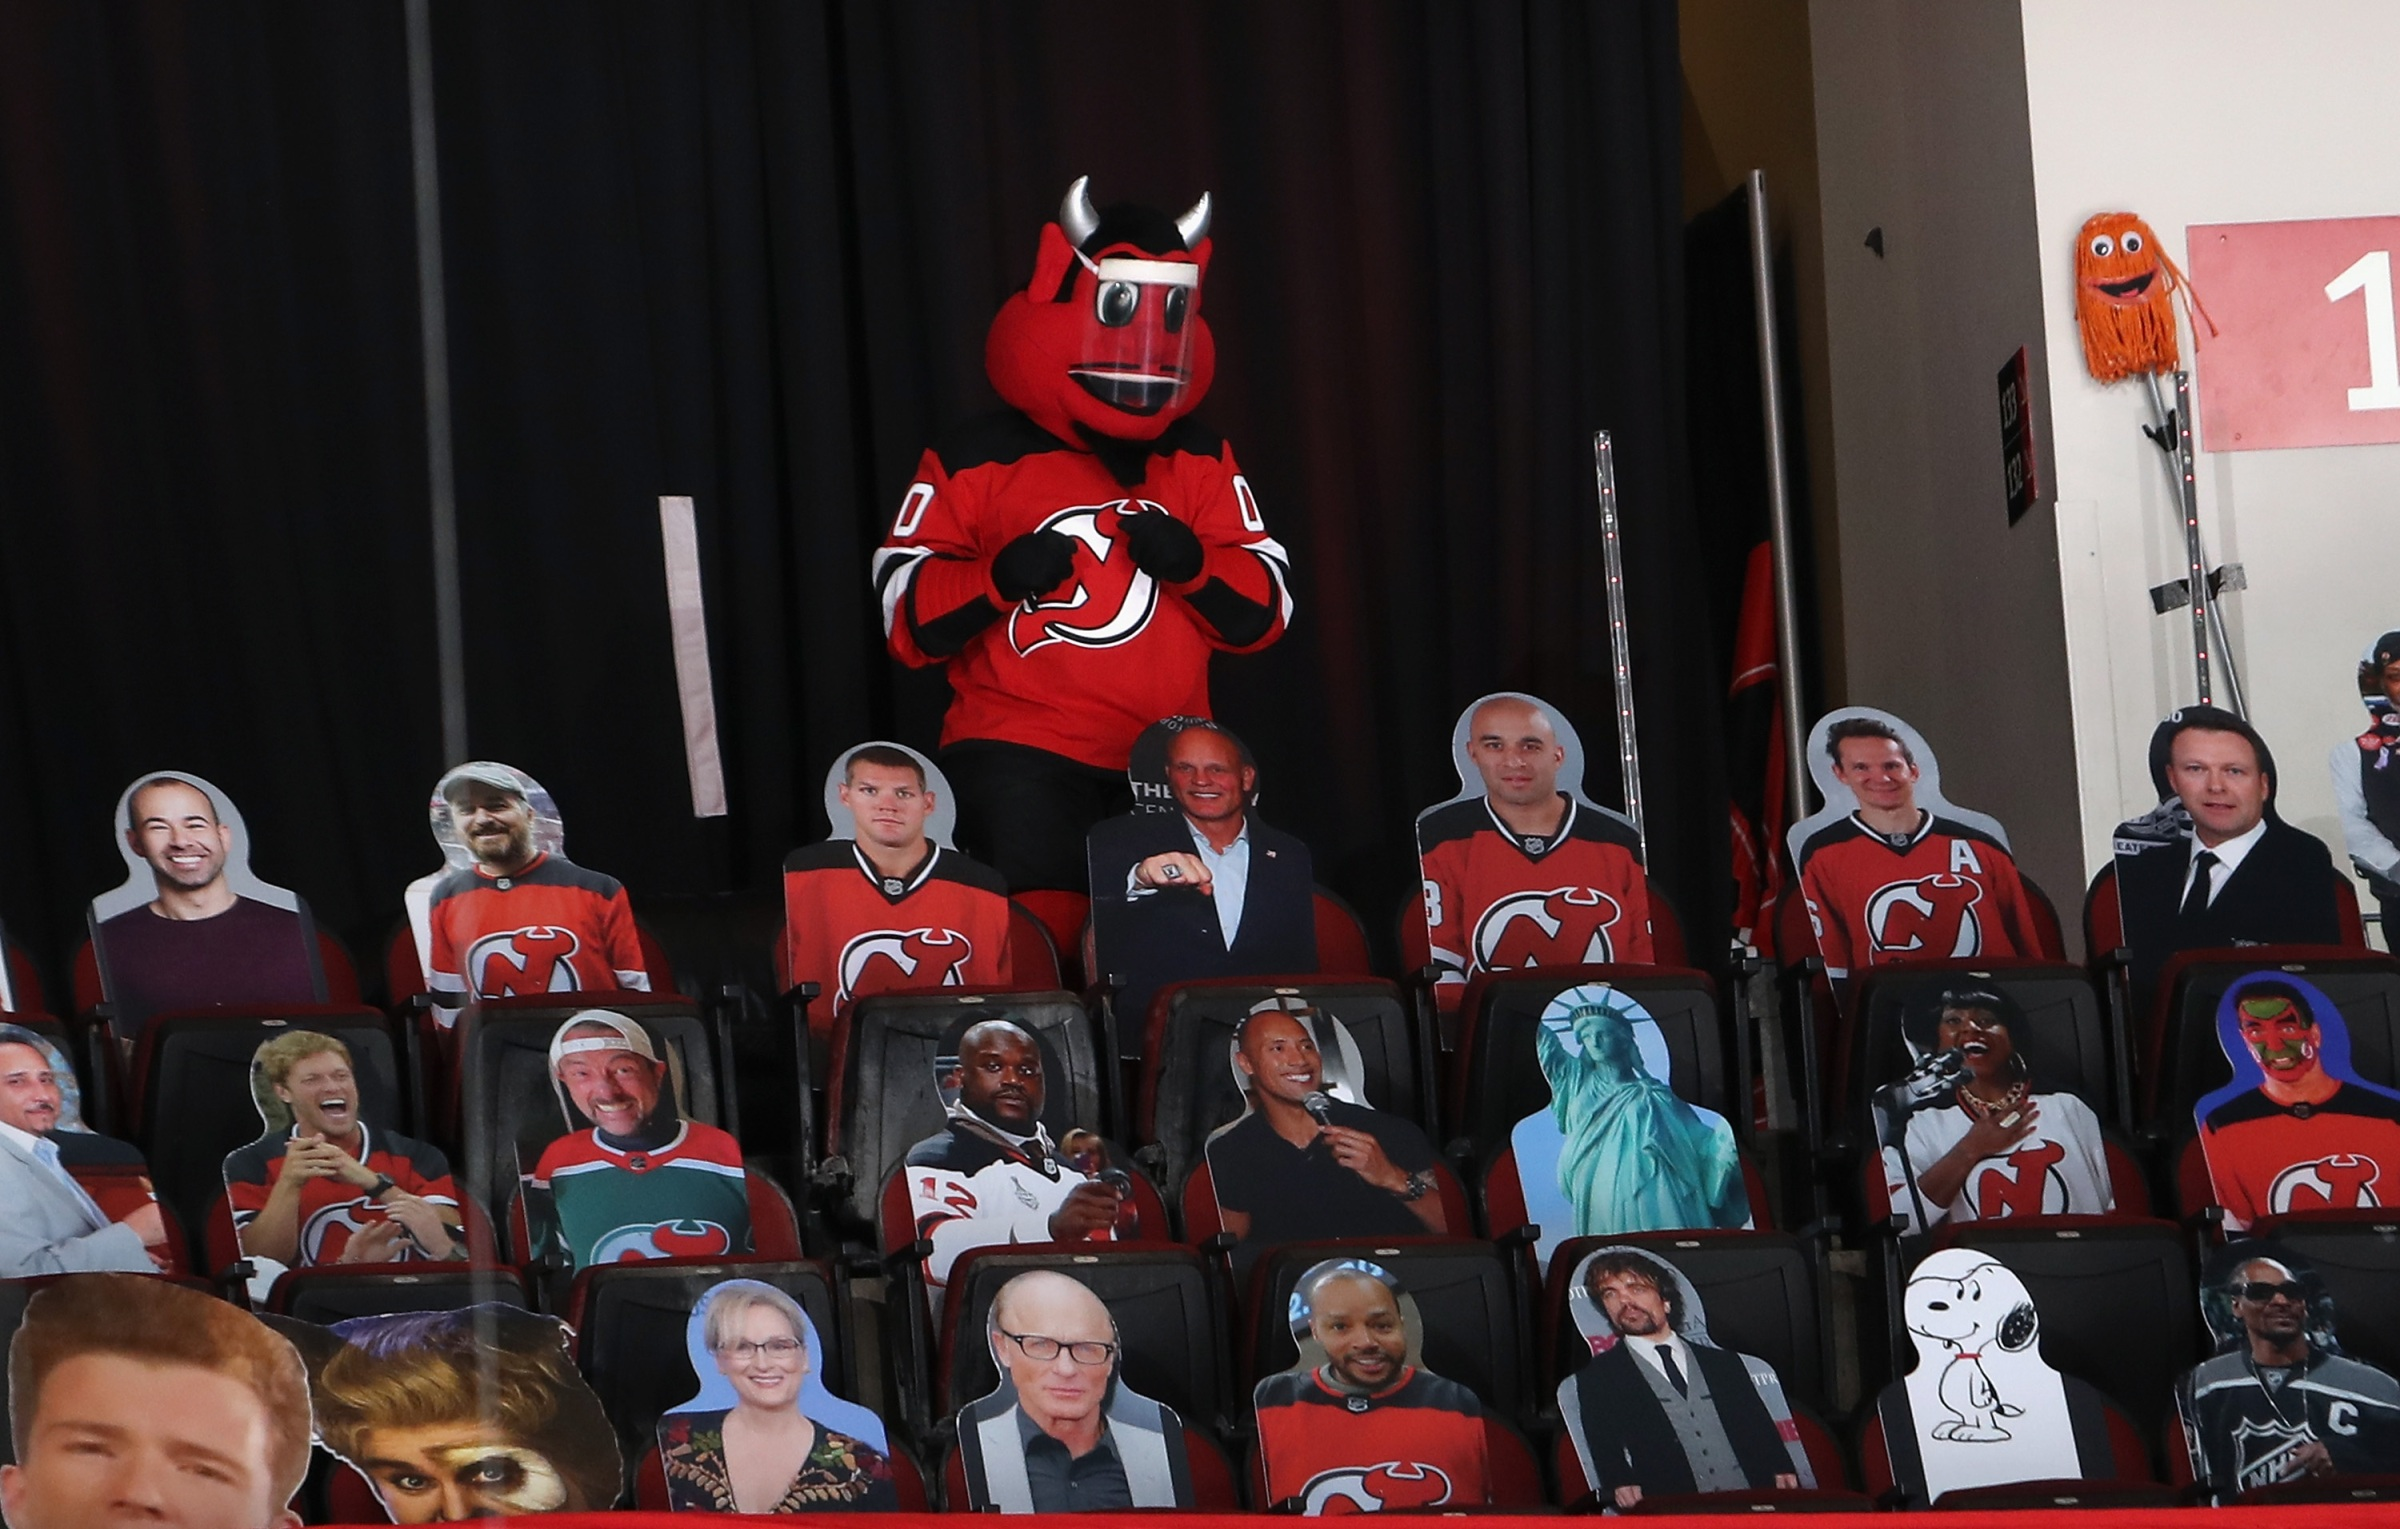 The New Jersey Devil stands in the last row of the arena surrounded by cardboard cut-outs